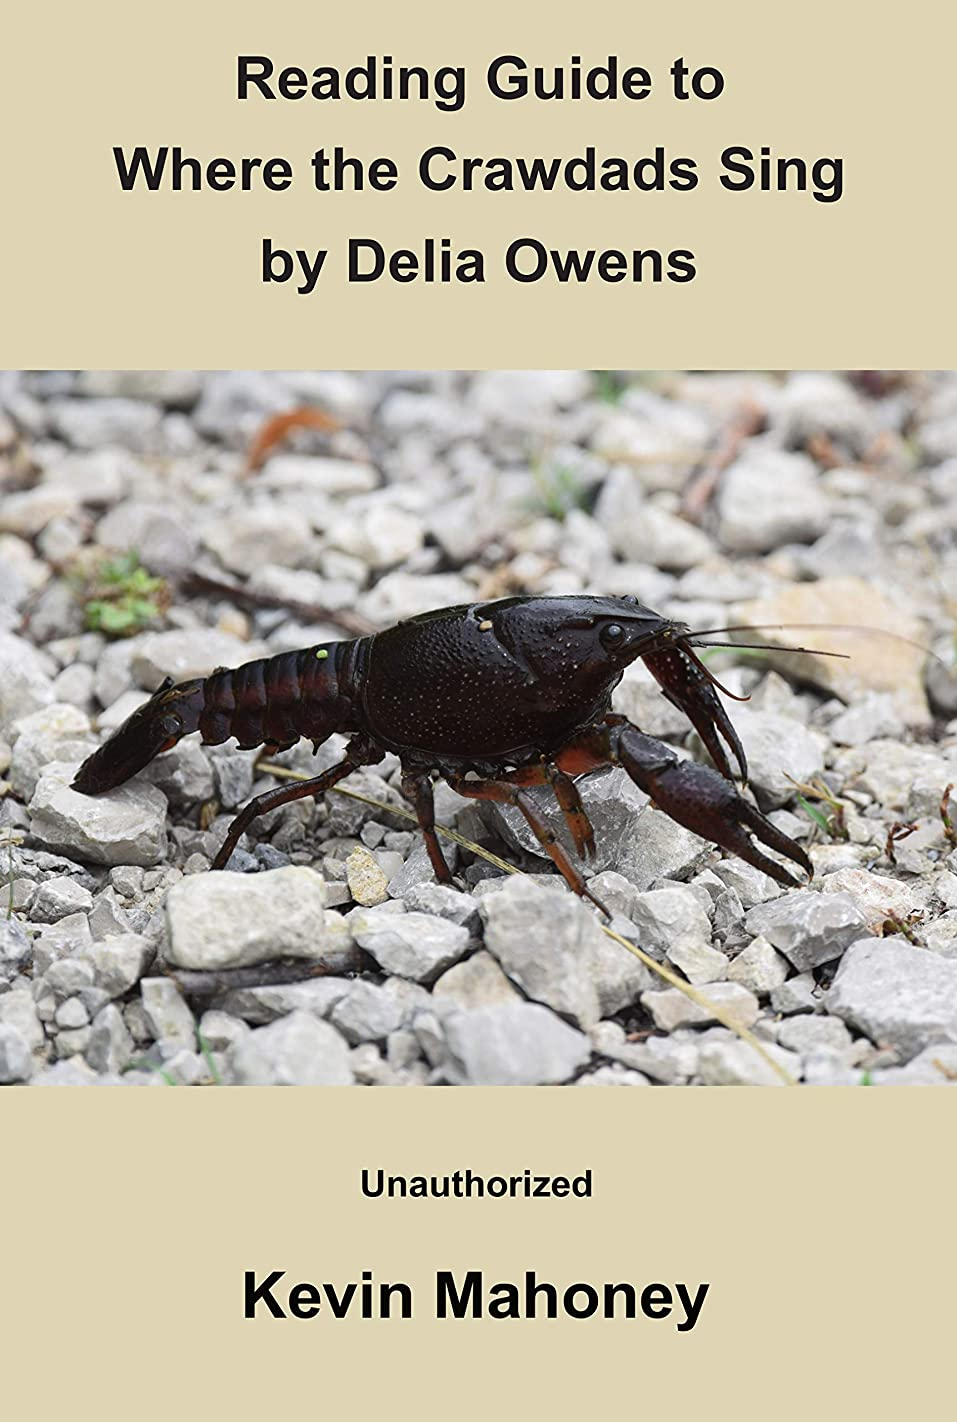 反発する中断約設定Reading Guide to Where the Crawdads Sing by Delia Owens: (Unauthorized) (English Edition)